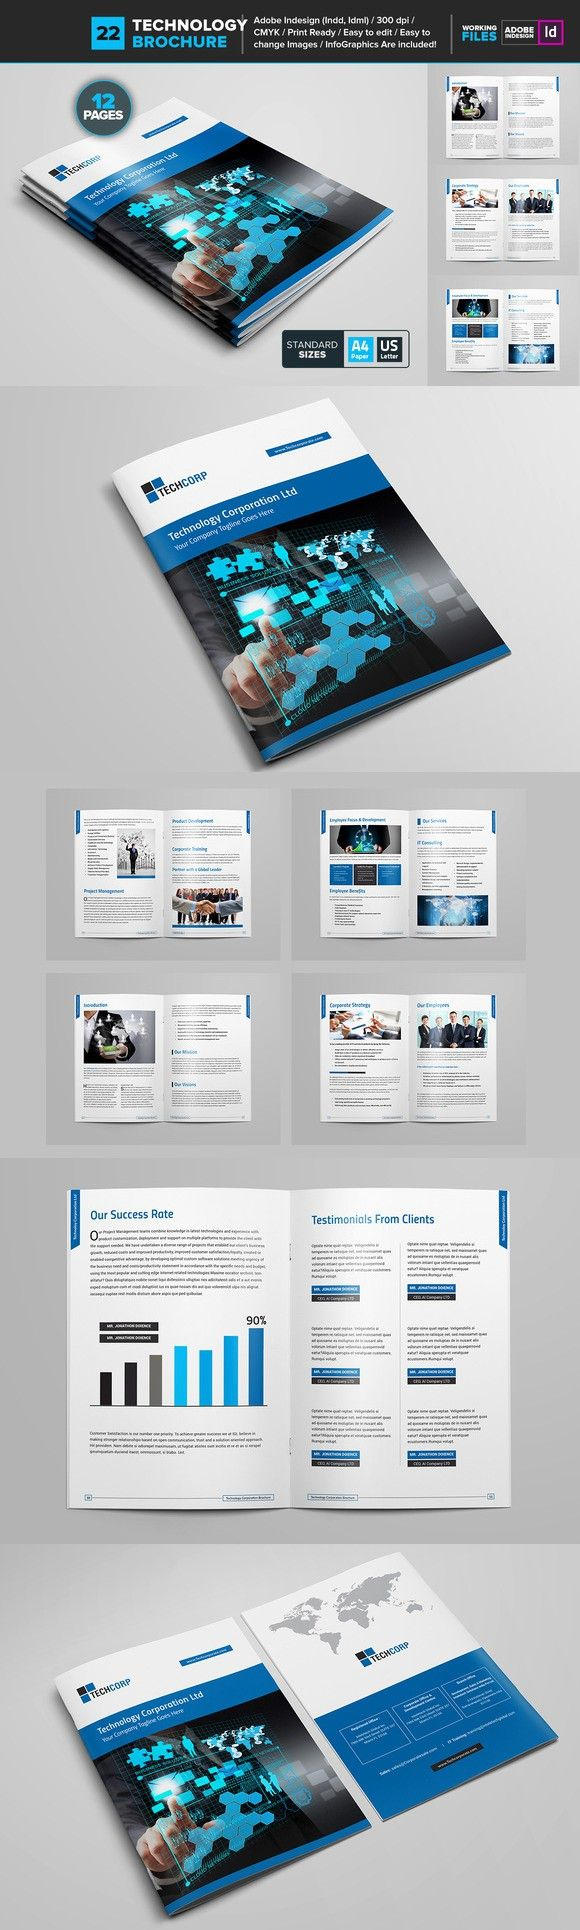 Technology Brochure Template 22. Brochure Templates. $10.00